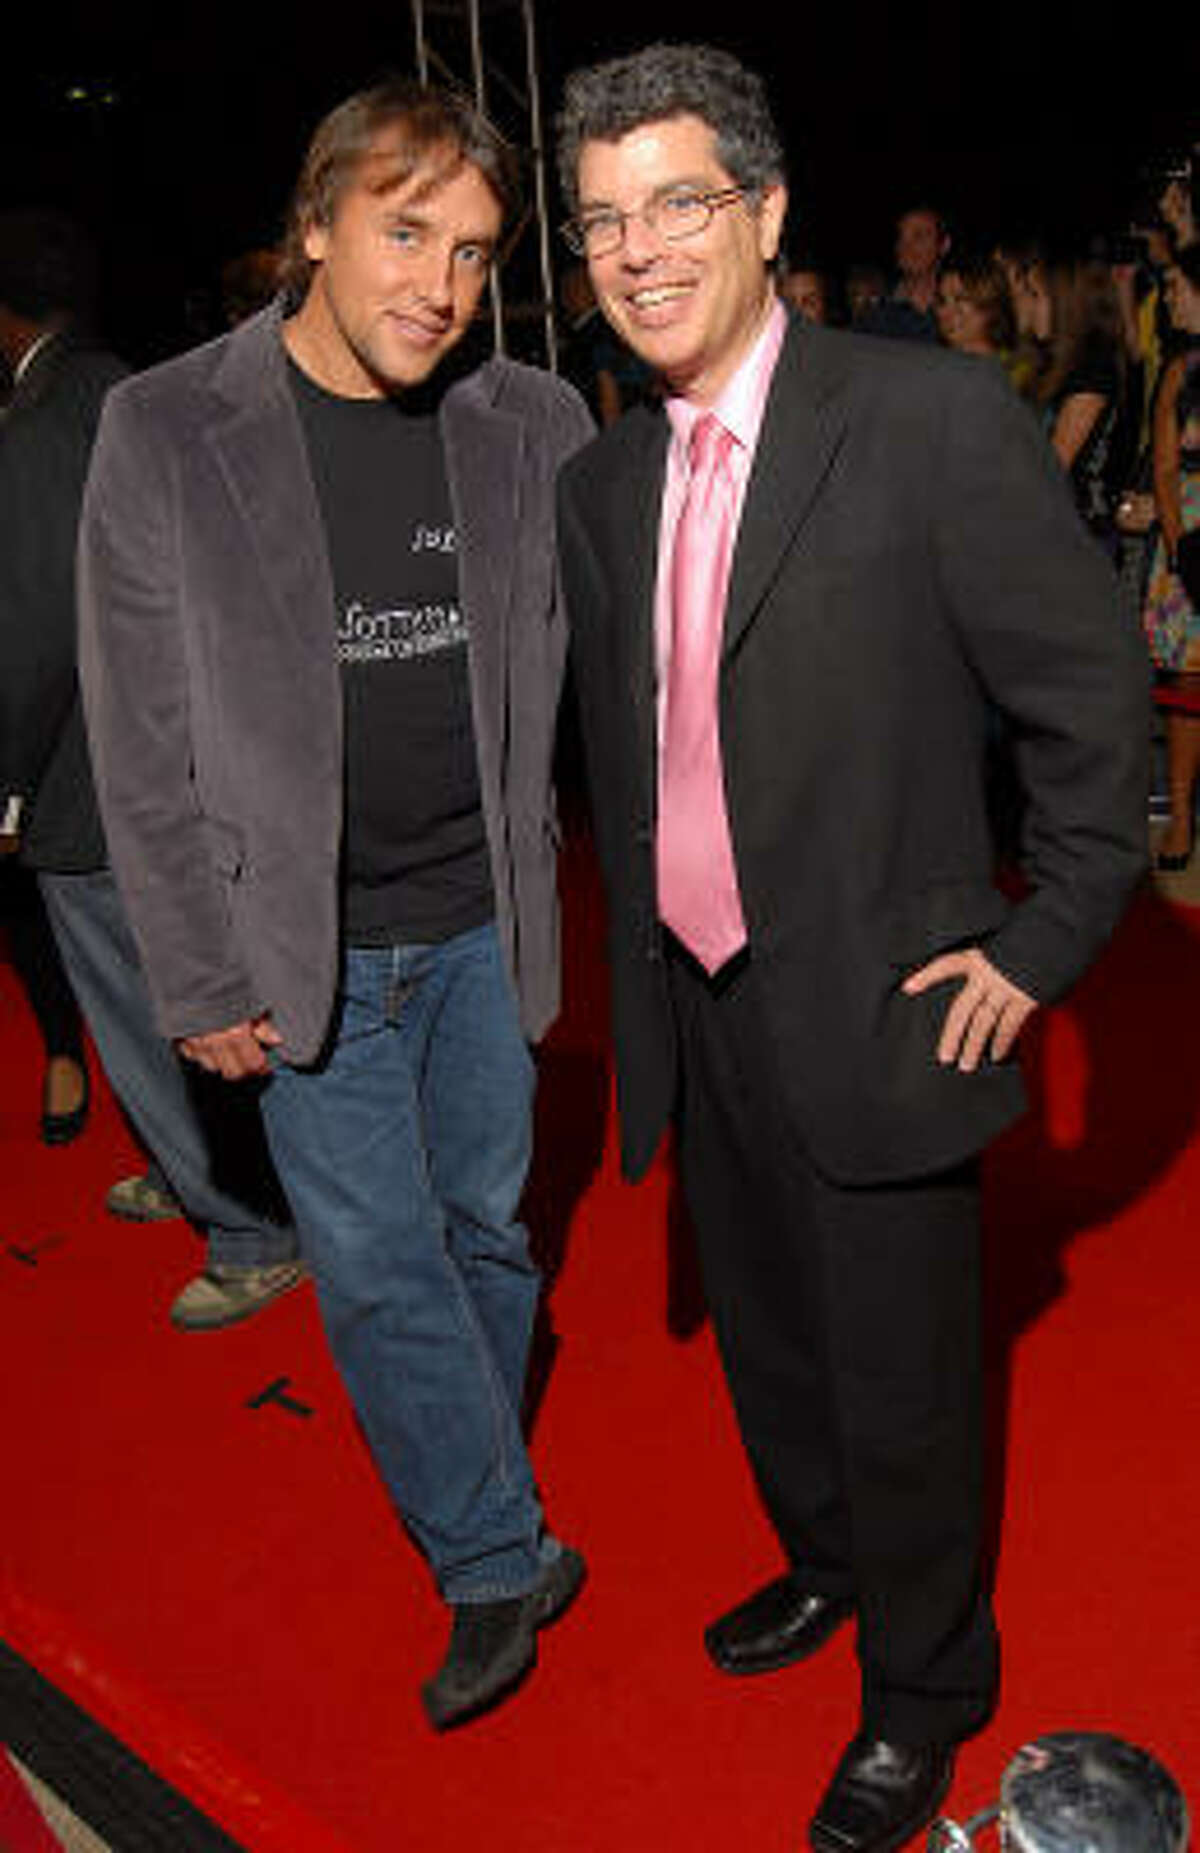 To kick off Cinema Arts Festival Houston, director Richard Linklater, at left, and festival curator Richard Herskowitz walk the red carpet outside Museum of Fine Arts Houston before a screening of Linklater's Me and Orson Welles.